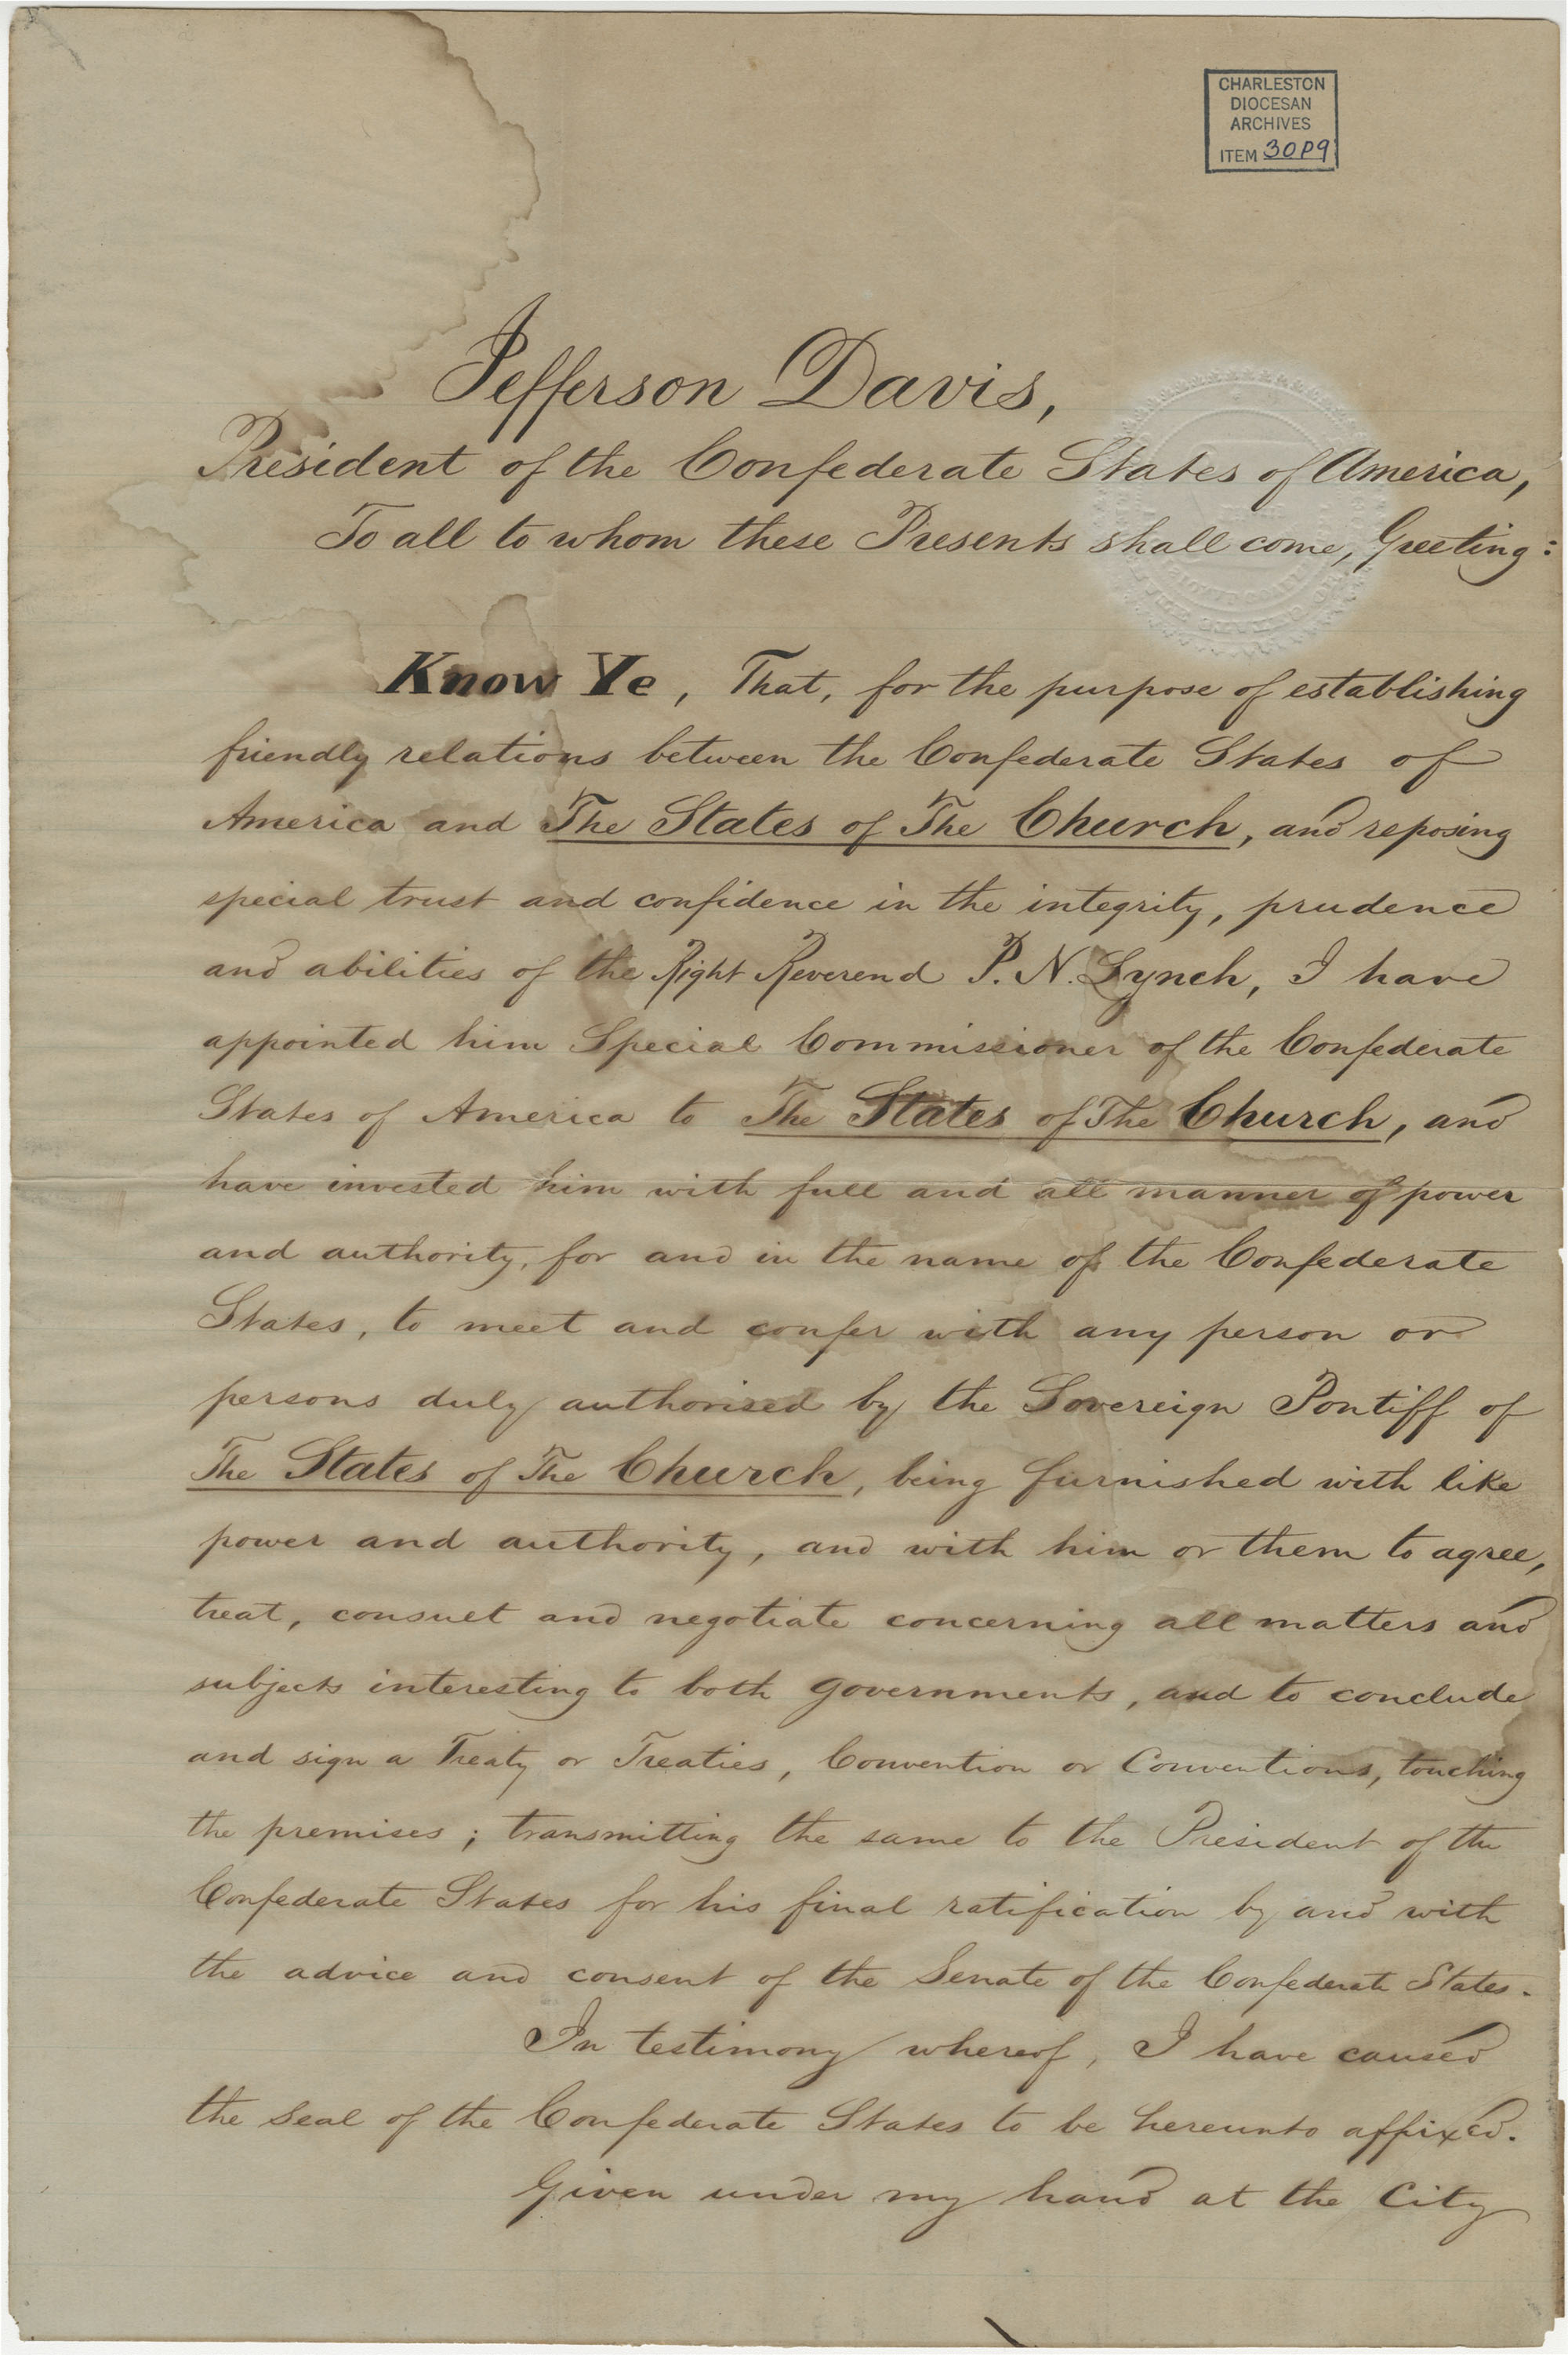 Appointment letter from Jefferson Davis